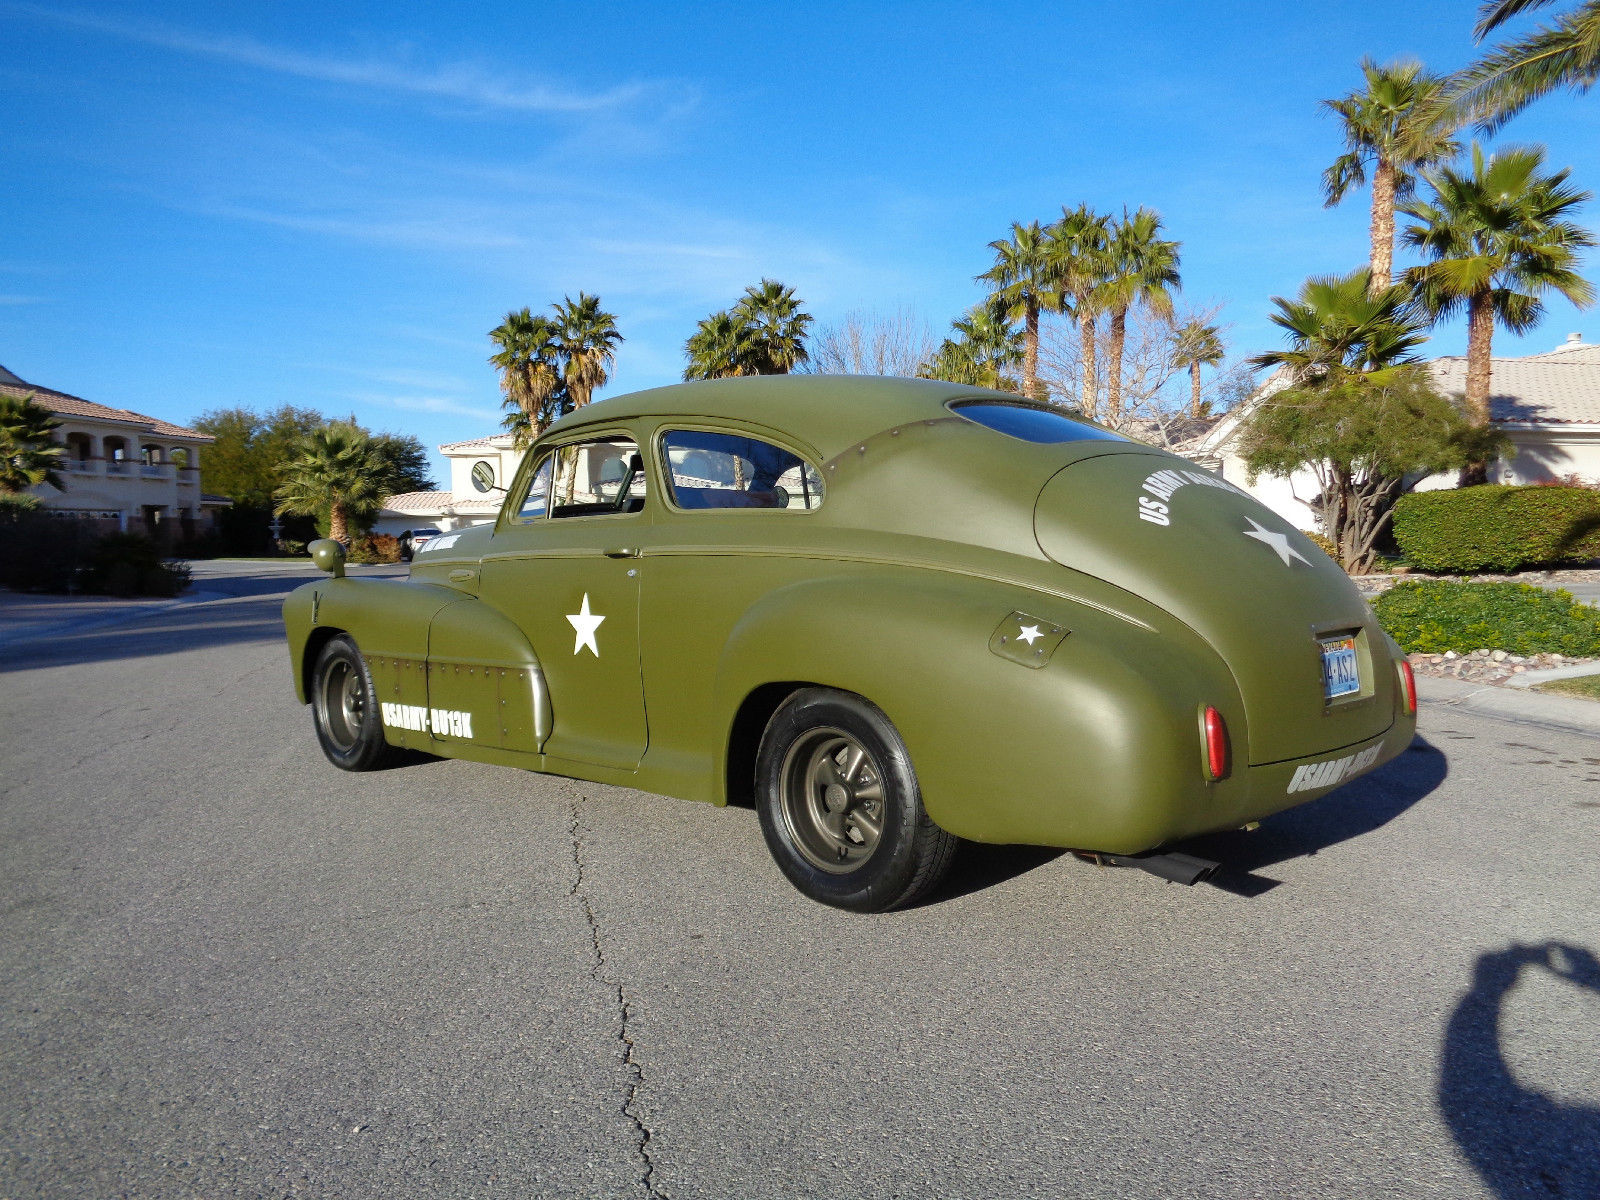 Army Vehicles For Sale >> 1942 Buick Coupe Hot Rod Army/Air Force Style